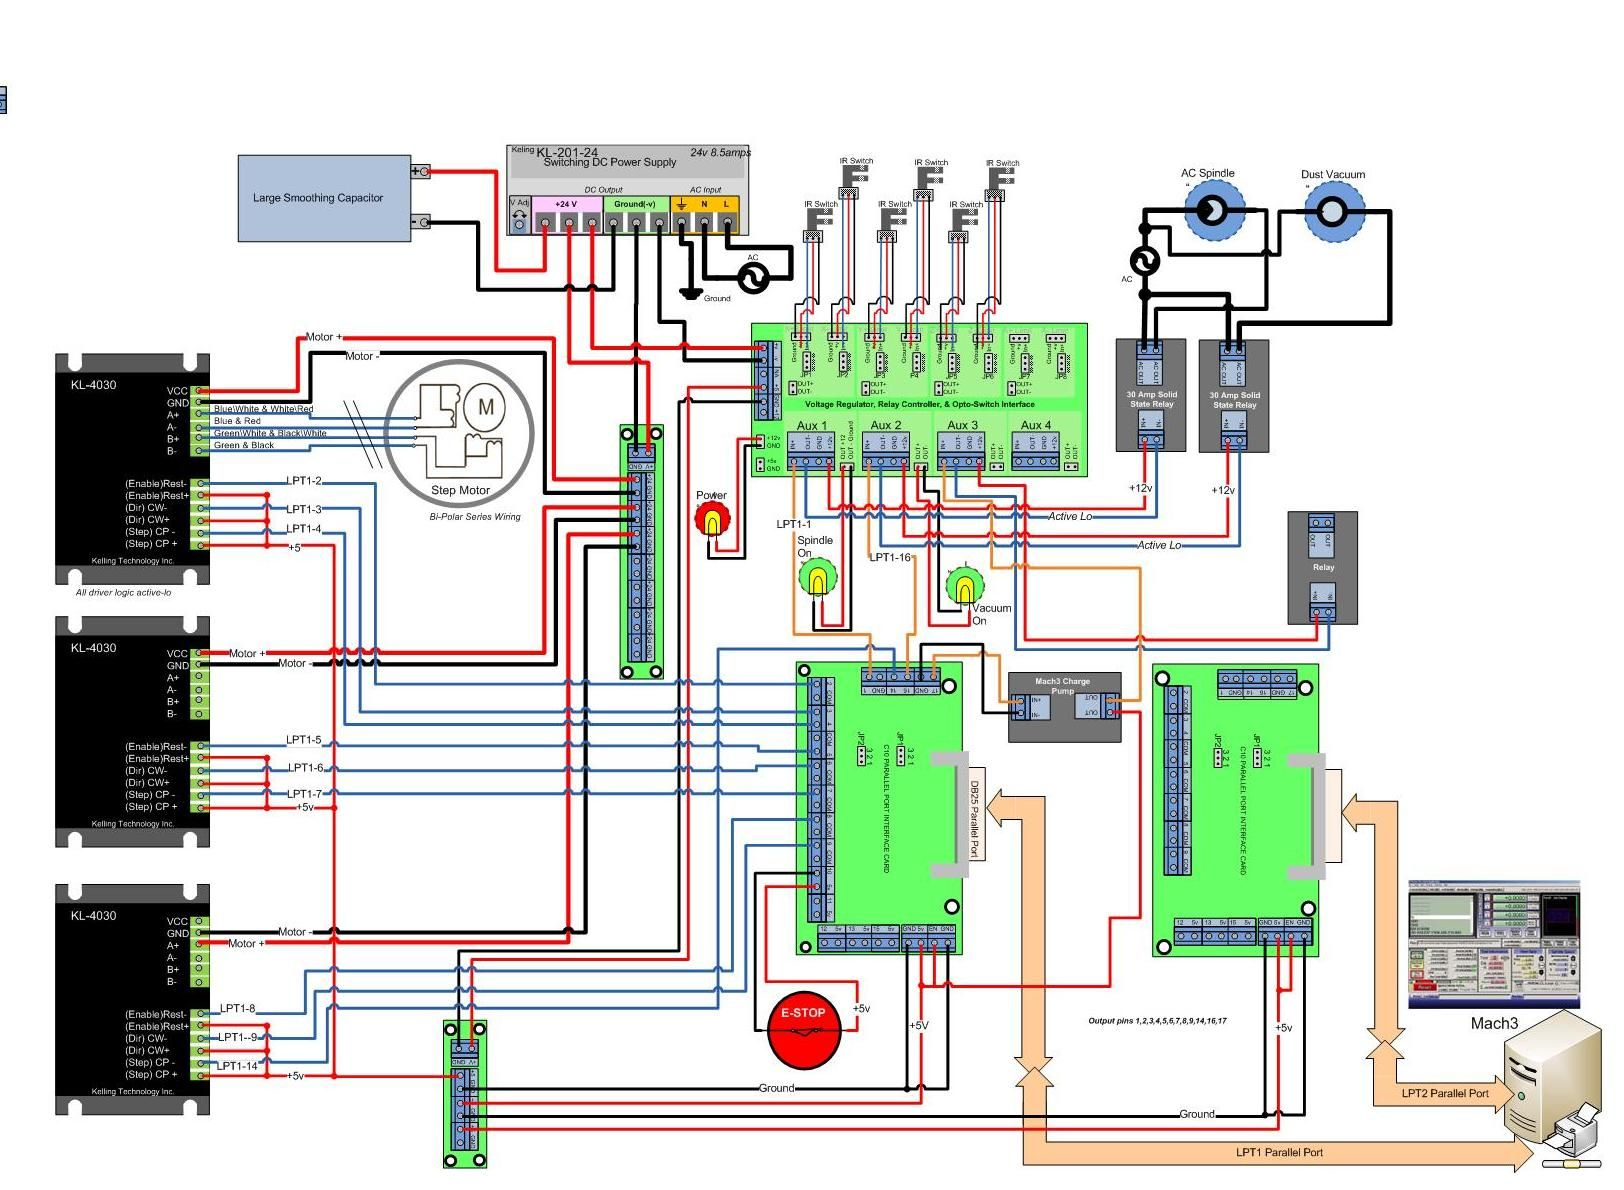 de60b189cc98ab72eeb9d2e3f3d349dc cnc wiring diagram cnc pinterest ciclop 3d scanner arduino uno/cnc shield v3 wiring diagram at readyjetset.co